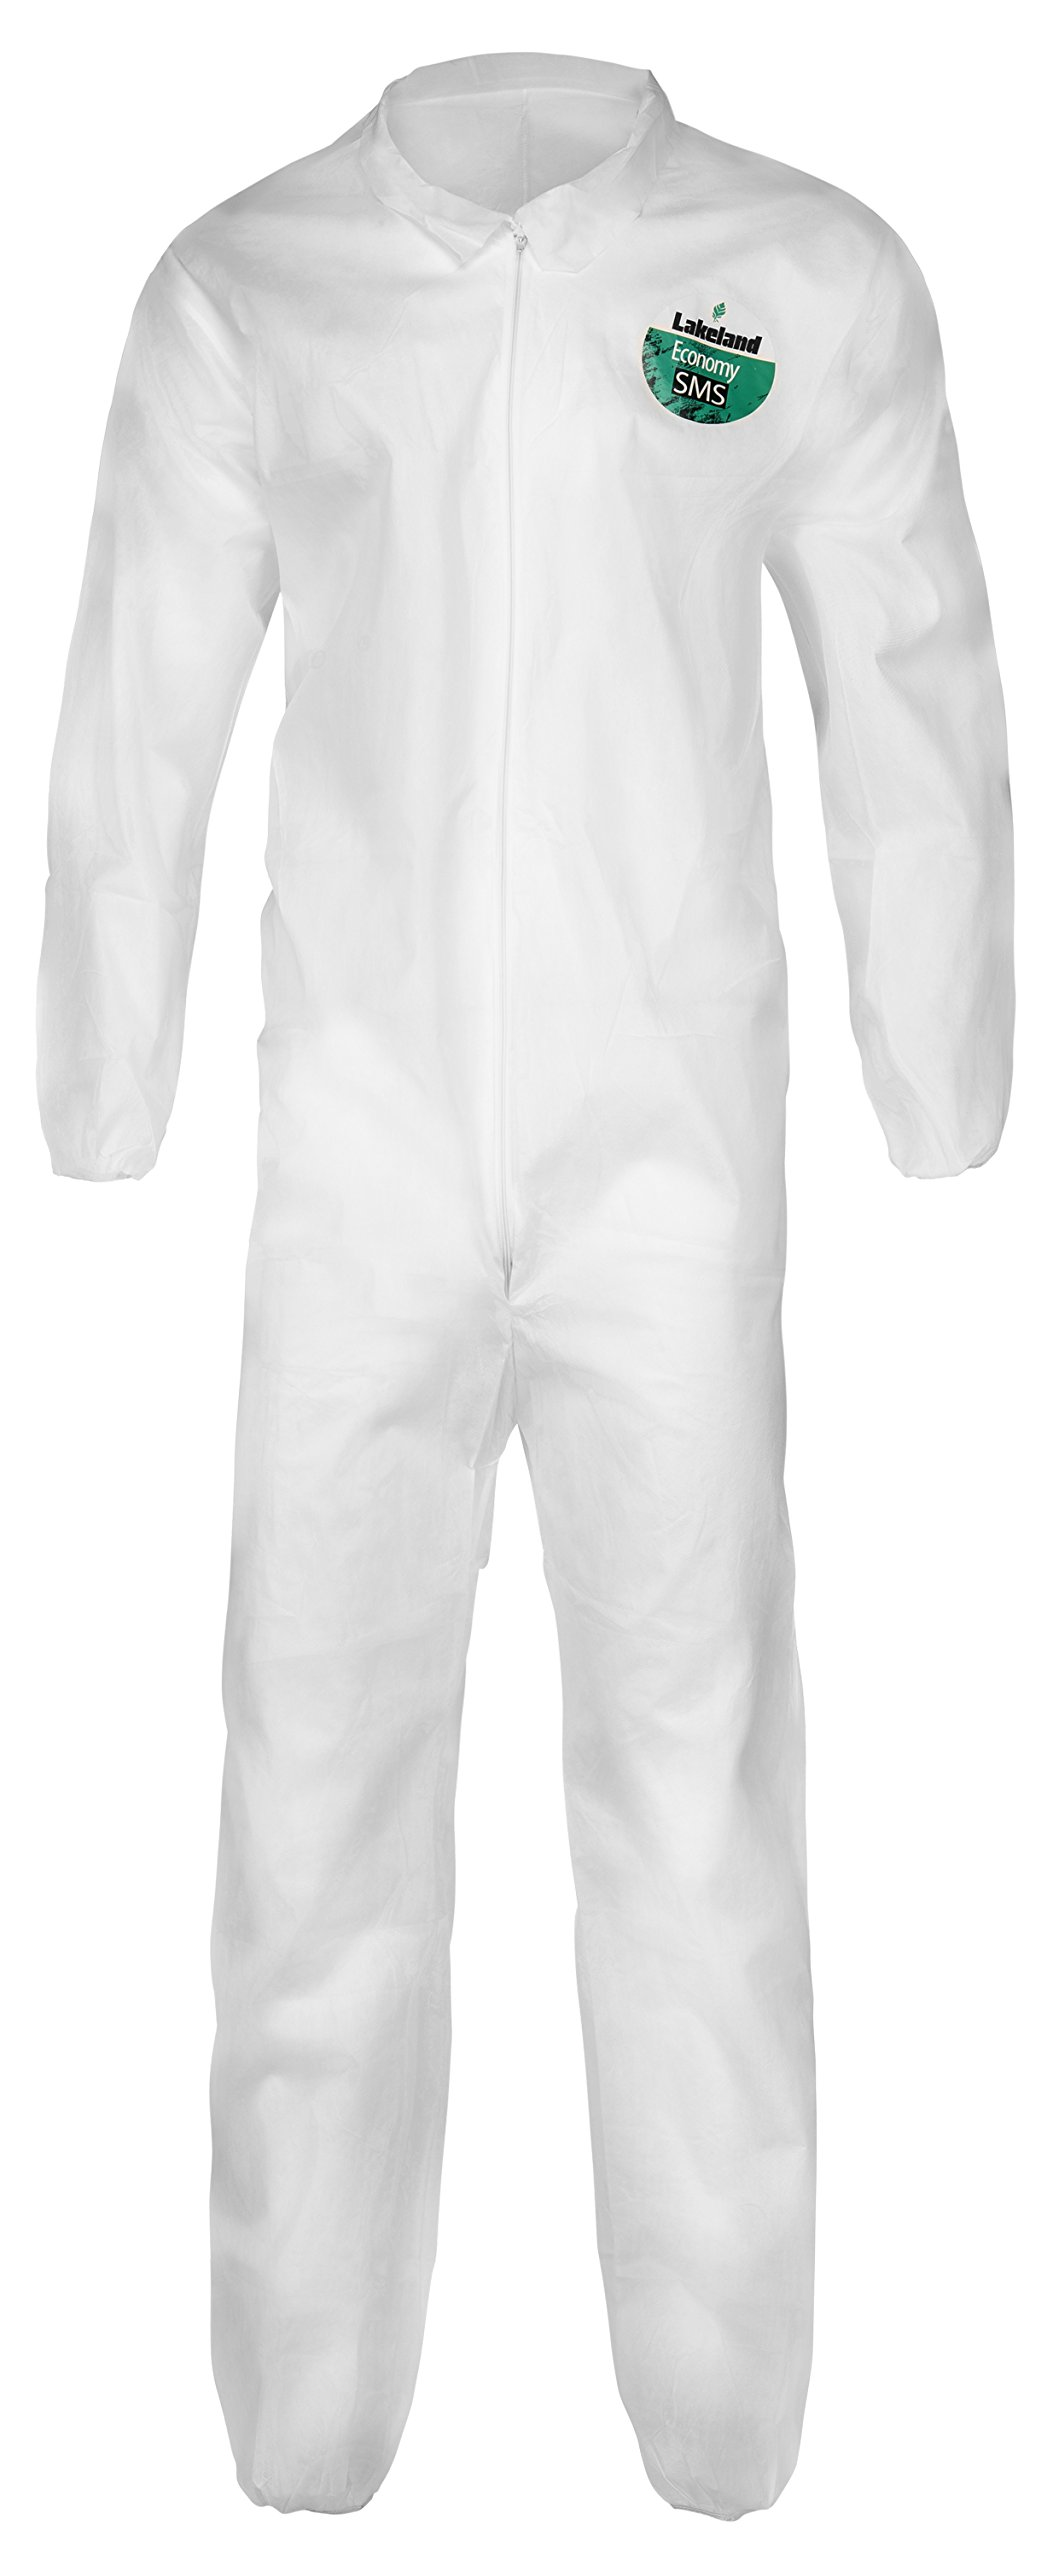 Lakeland SafeGard Economy SMS Coverall, Disposable, Elastic Cuff, 2X-Large, White (Case of 25) by Lakeland Industries Inc